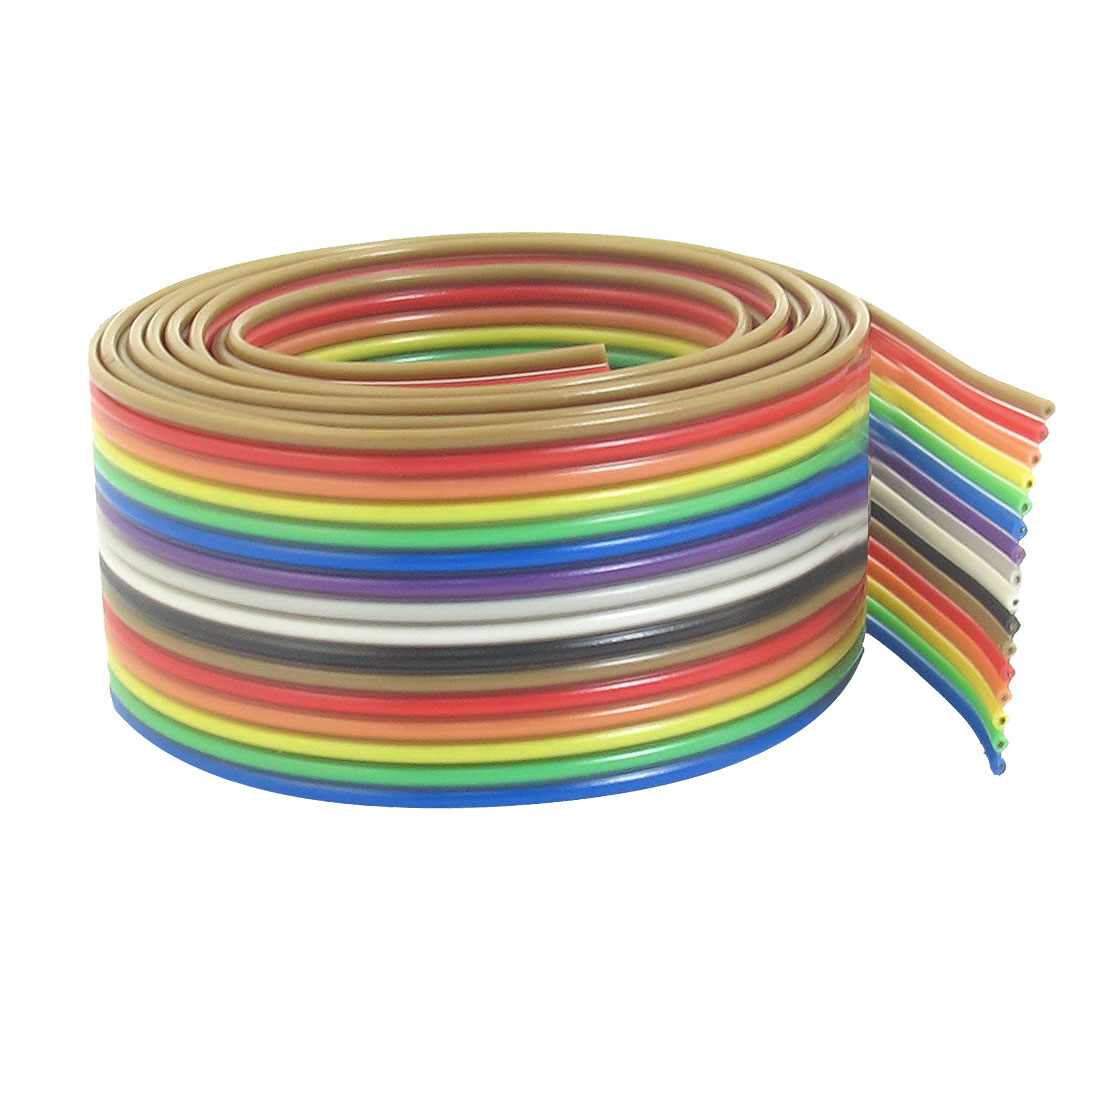 5 Pcs 1.25mm Pitch 16 Pin 16 Way Rainbow Ribbon Jumper Cable Wires 1M Long